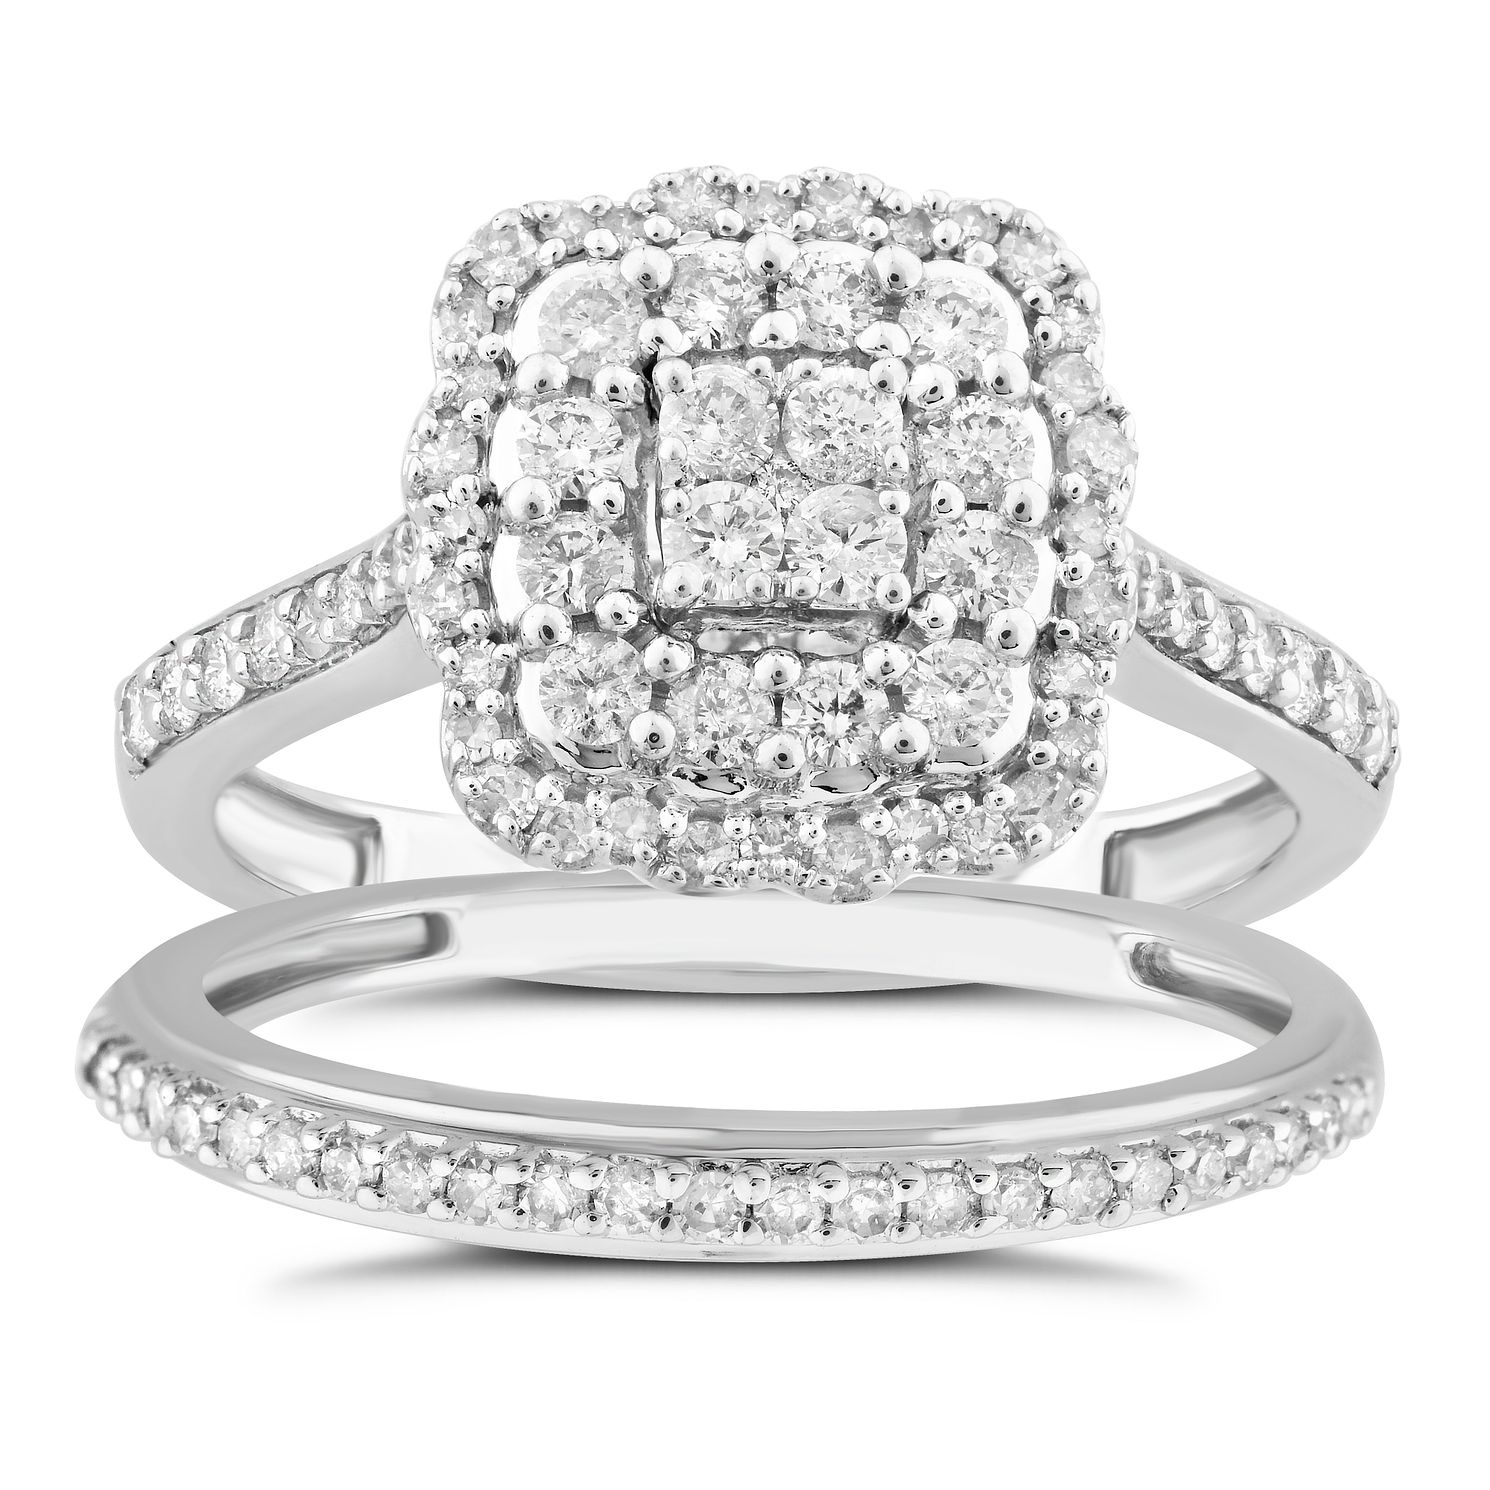 Perfect Fit 18ct White Gold & 2/3ct Pave Bridal Set - Product number 5061628